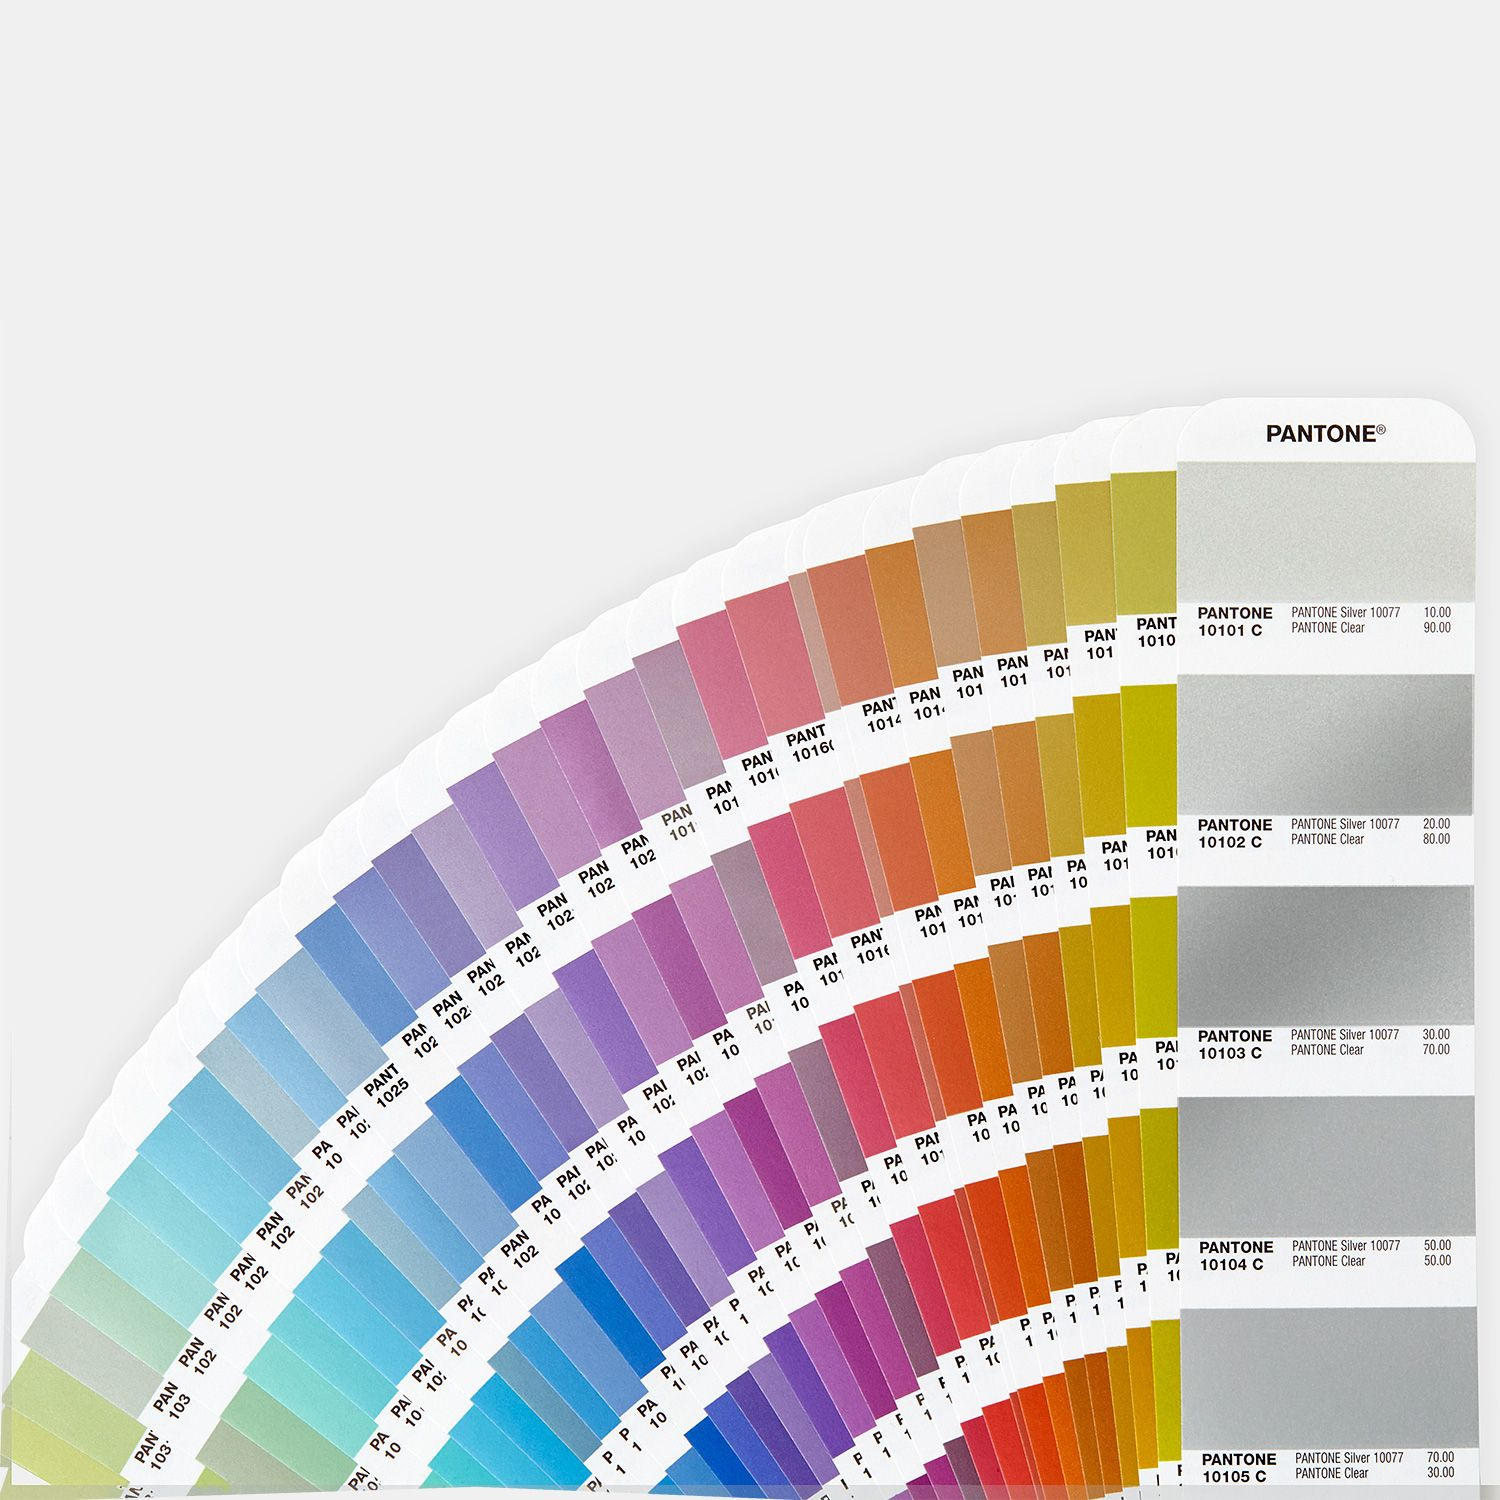 Pantone premium metallic coated guide gg1505 plus series pantone the plus series pantone premium metallics guide is an all new book of 300 dazzling metallic colors developed in response to the rapidly rising popularity of nvjuhfo Gallery